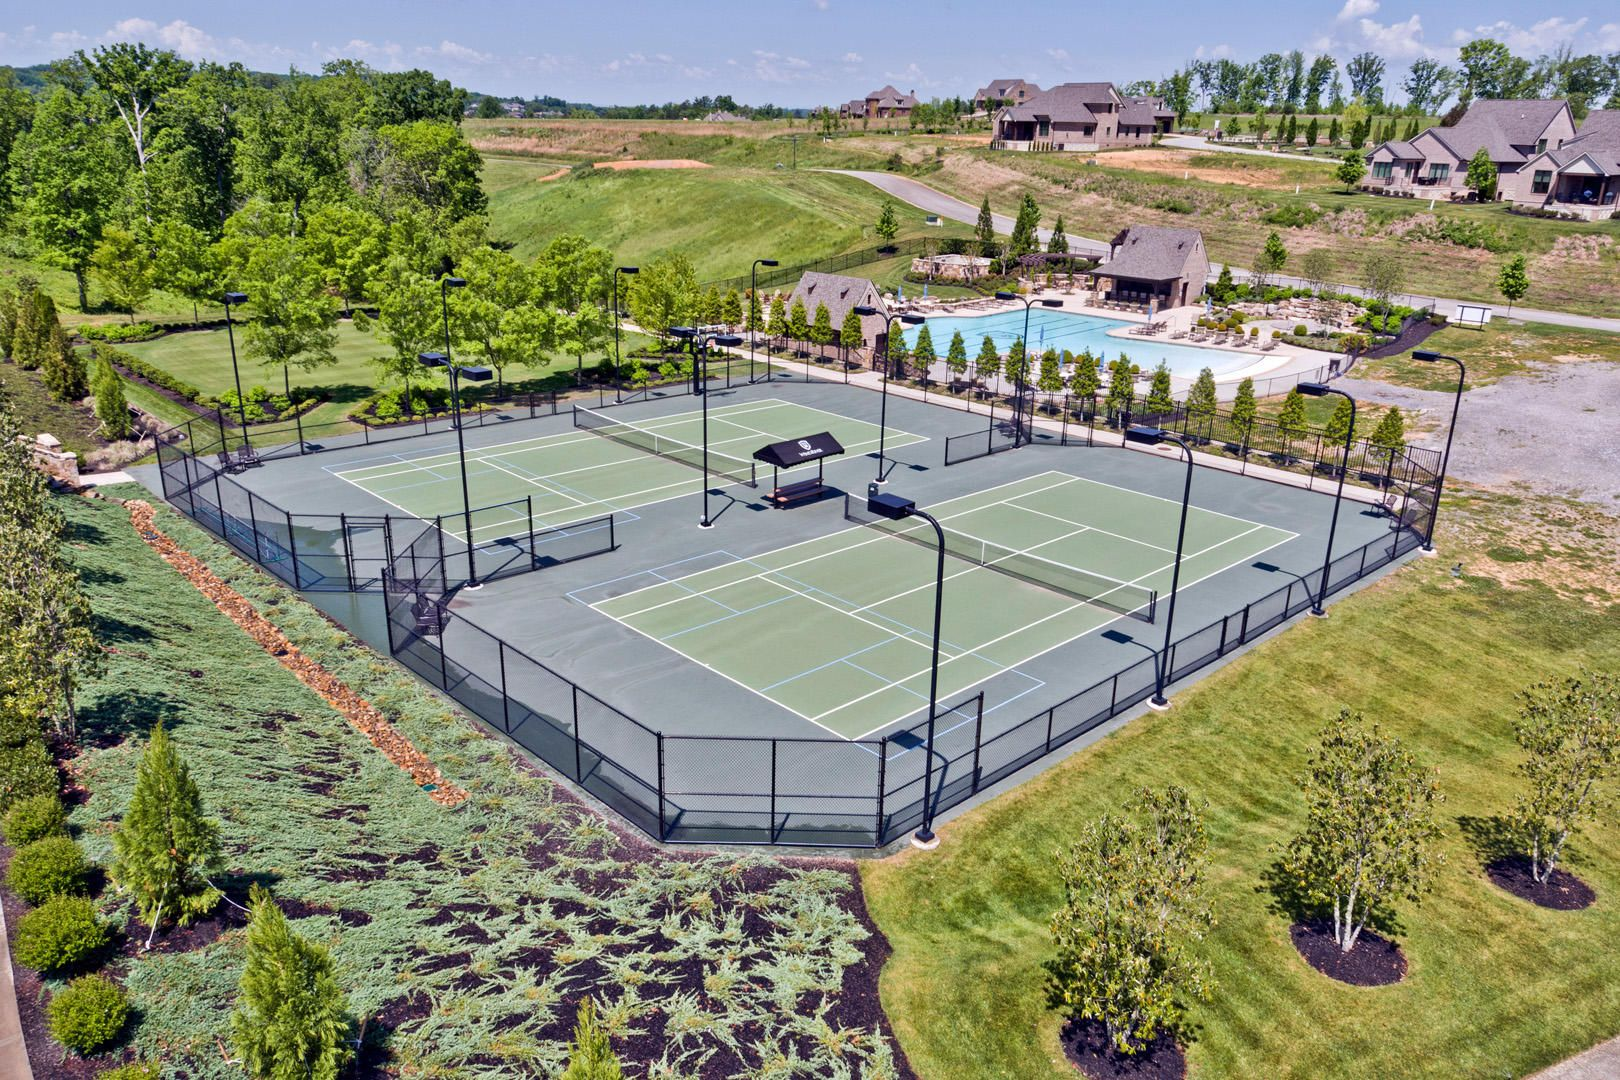 40_WindRiverTennis-PickleBallCourts